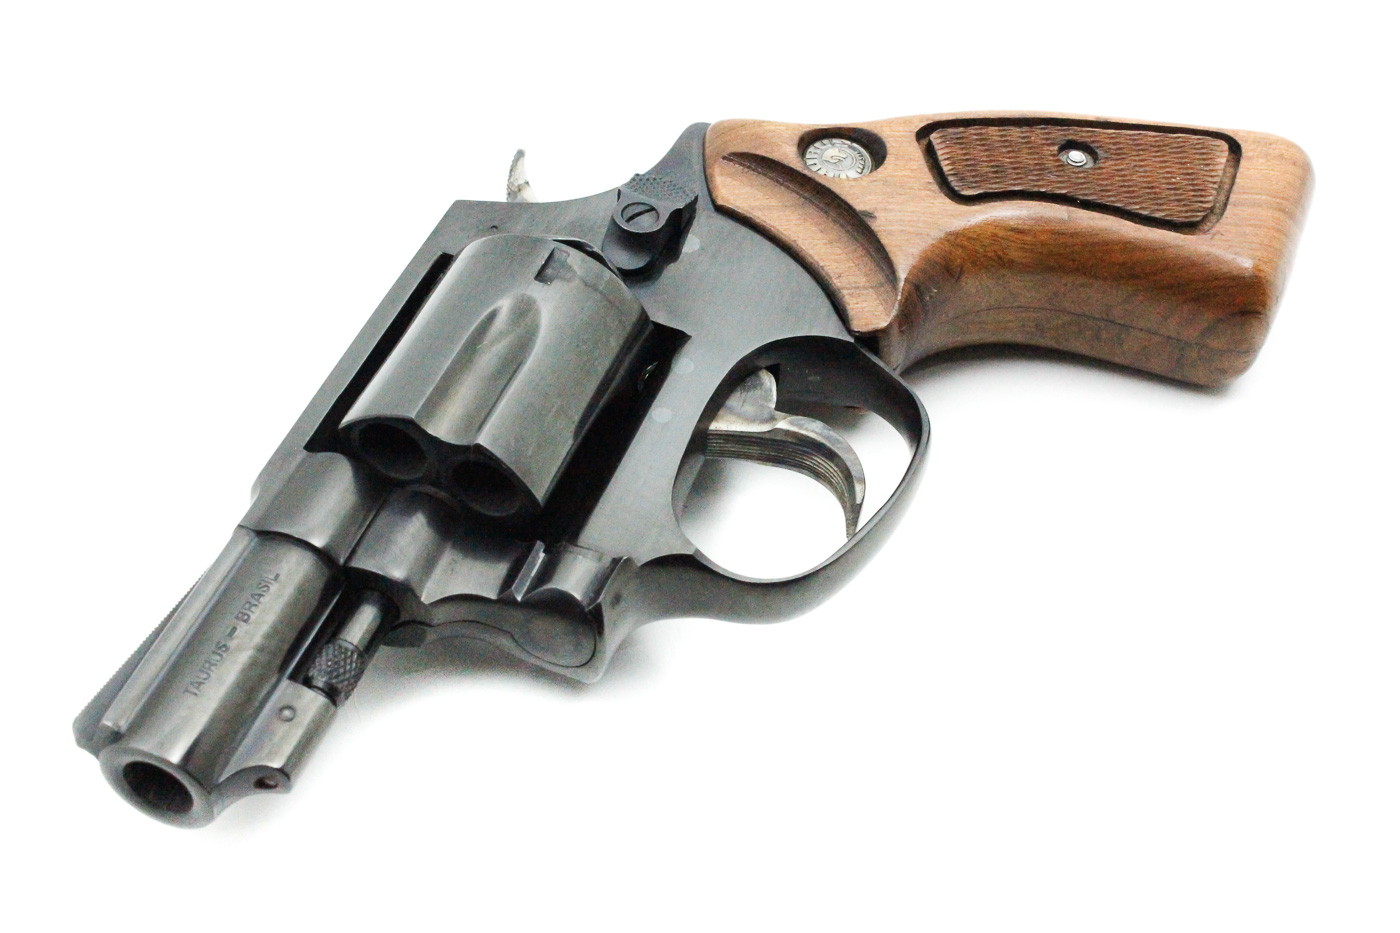 USED WEAPONS - Pistols and revolvers -  38 Special and  357 Magnum